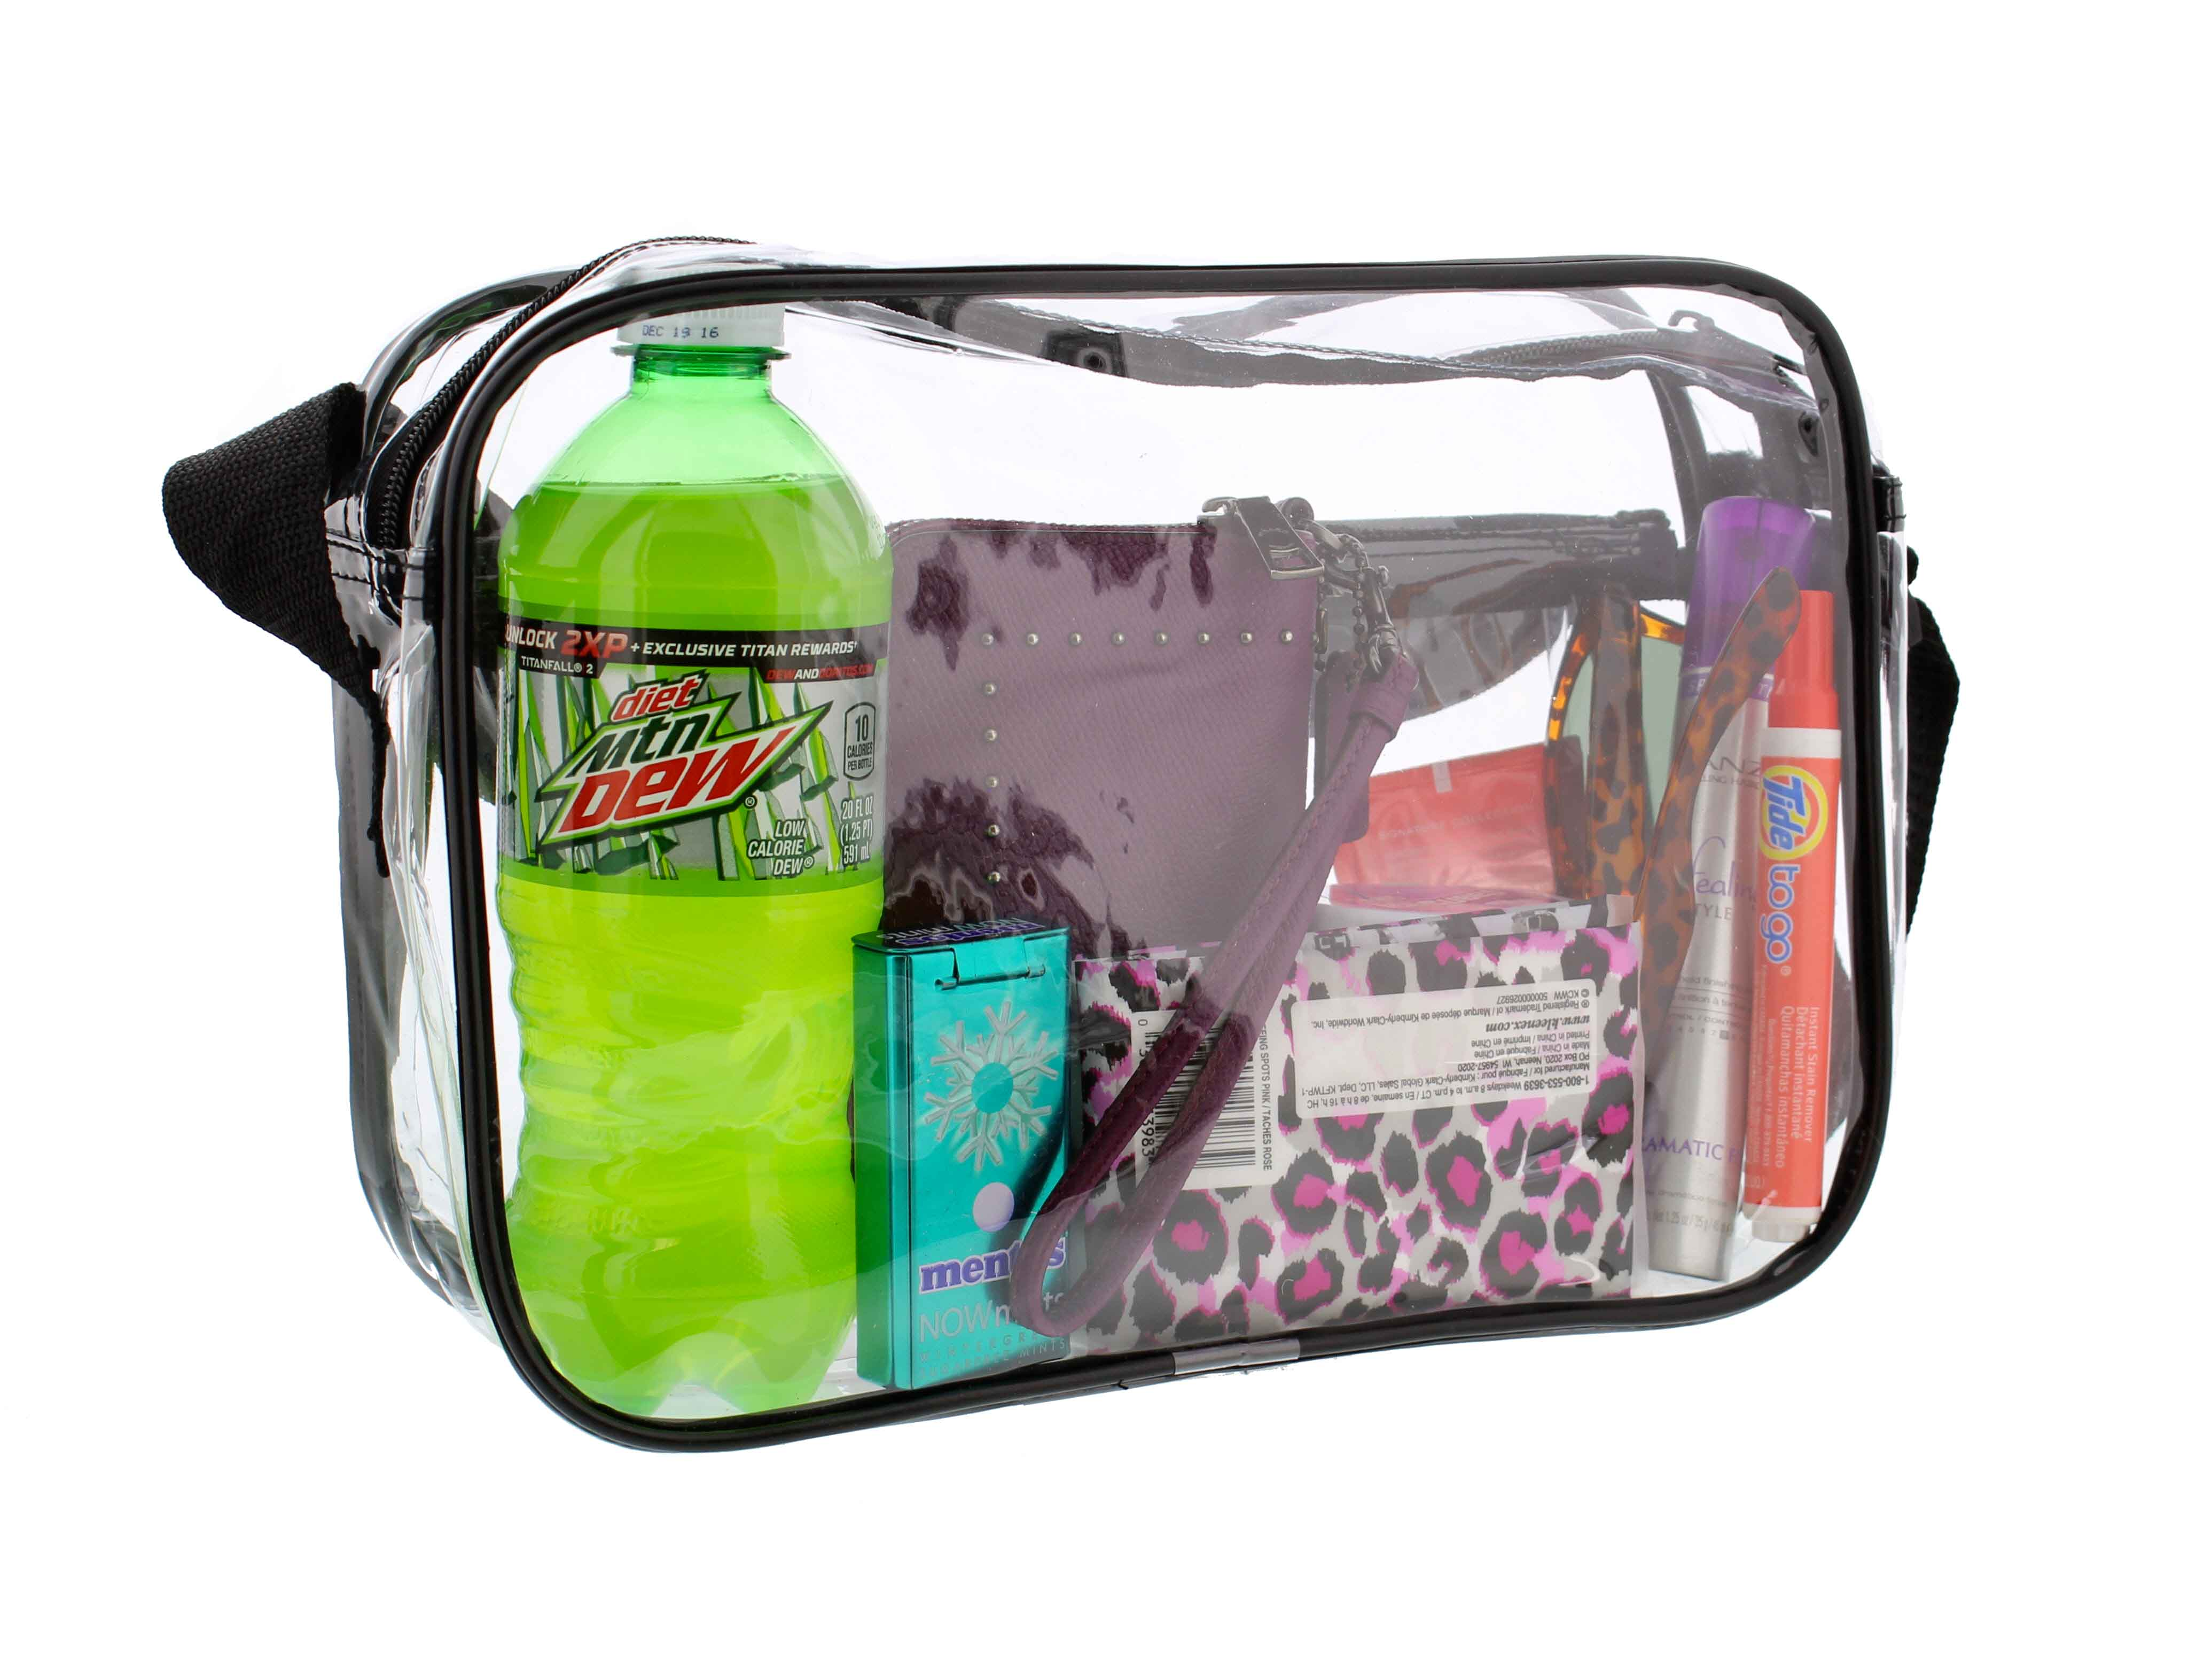 Clear-Purse-NFL-Stadium-Approved-Bag-with-Zipper-and-Shoulder-Strap thumbnail 12